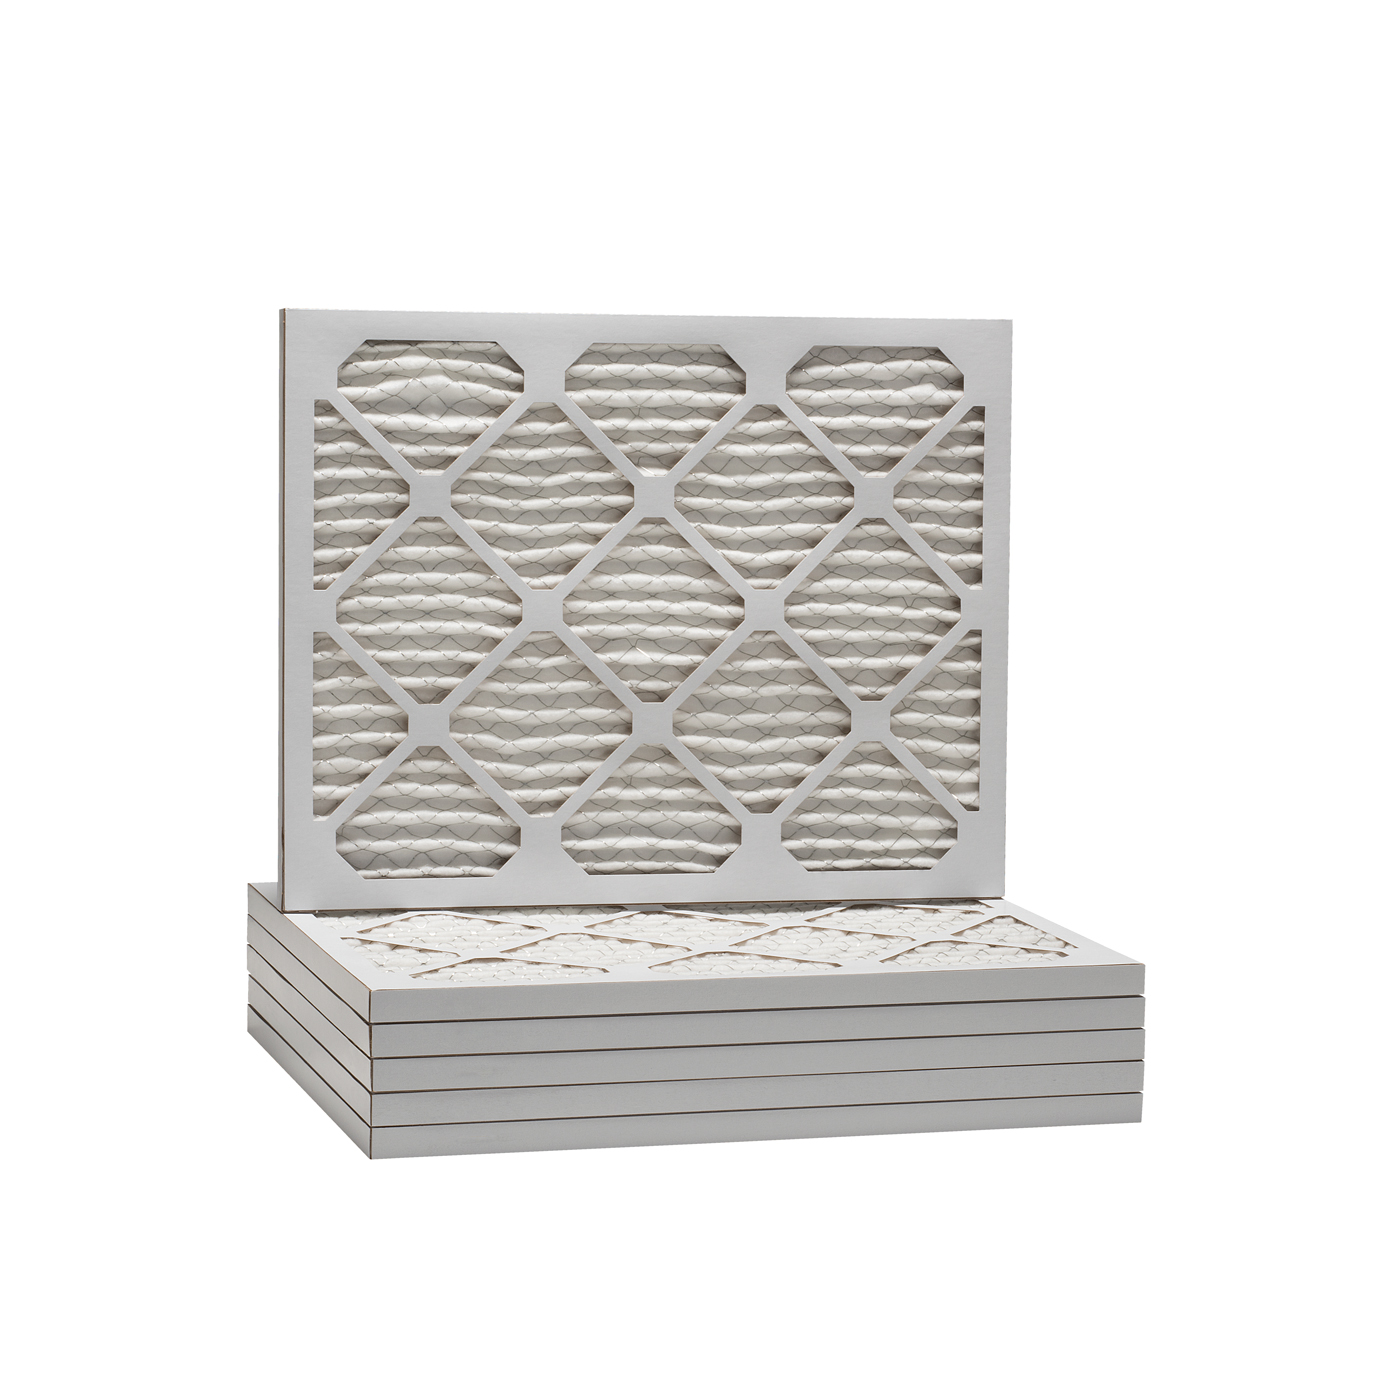 12x15x1 Merv 11 Universal Air Filter By Tier1 (6-Pack) TIER1_P15S_6112D15_6_PACK